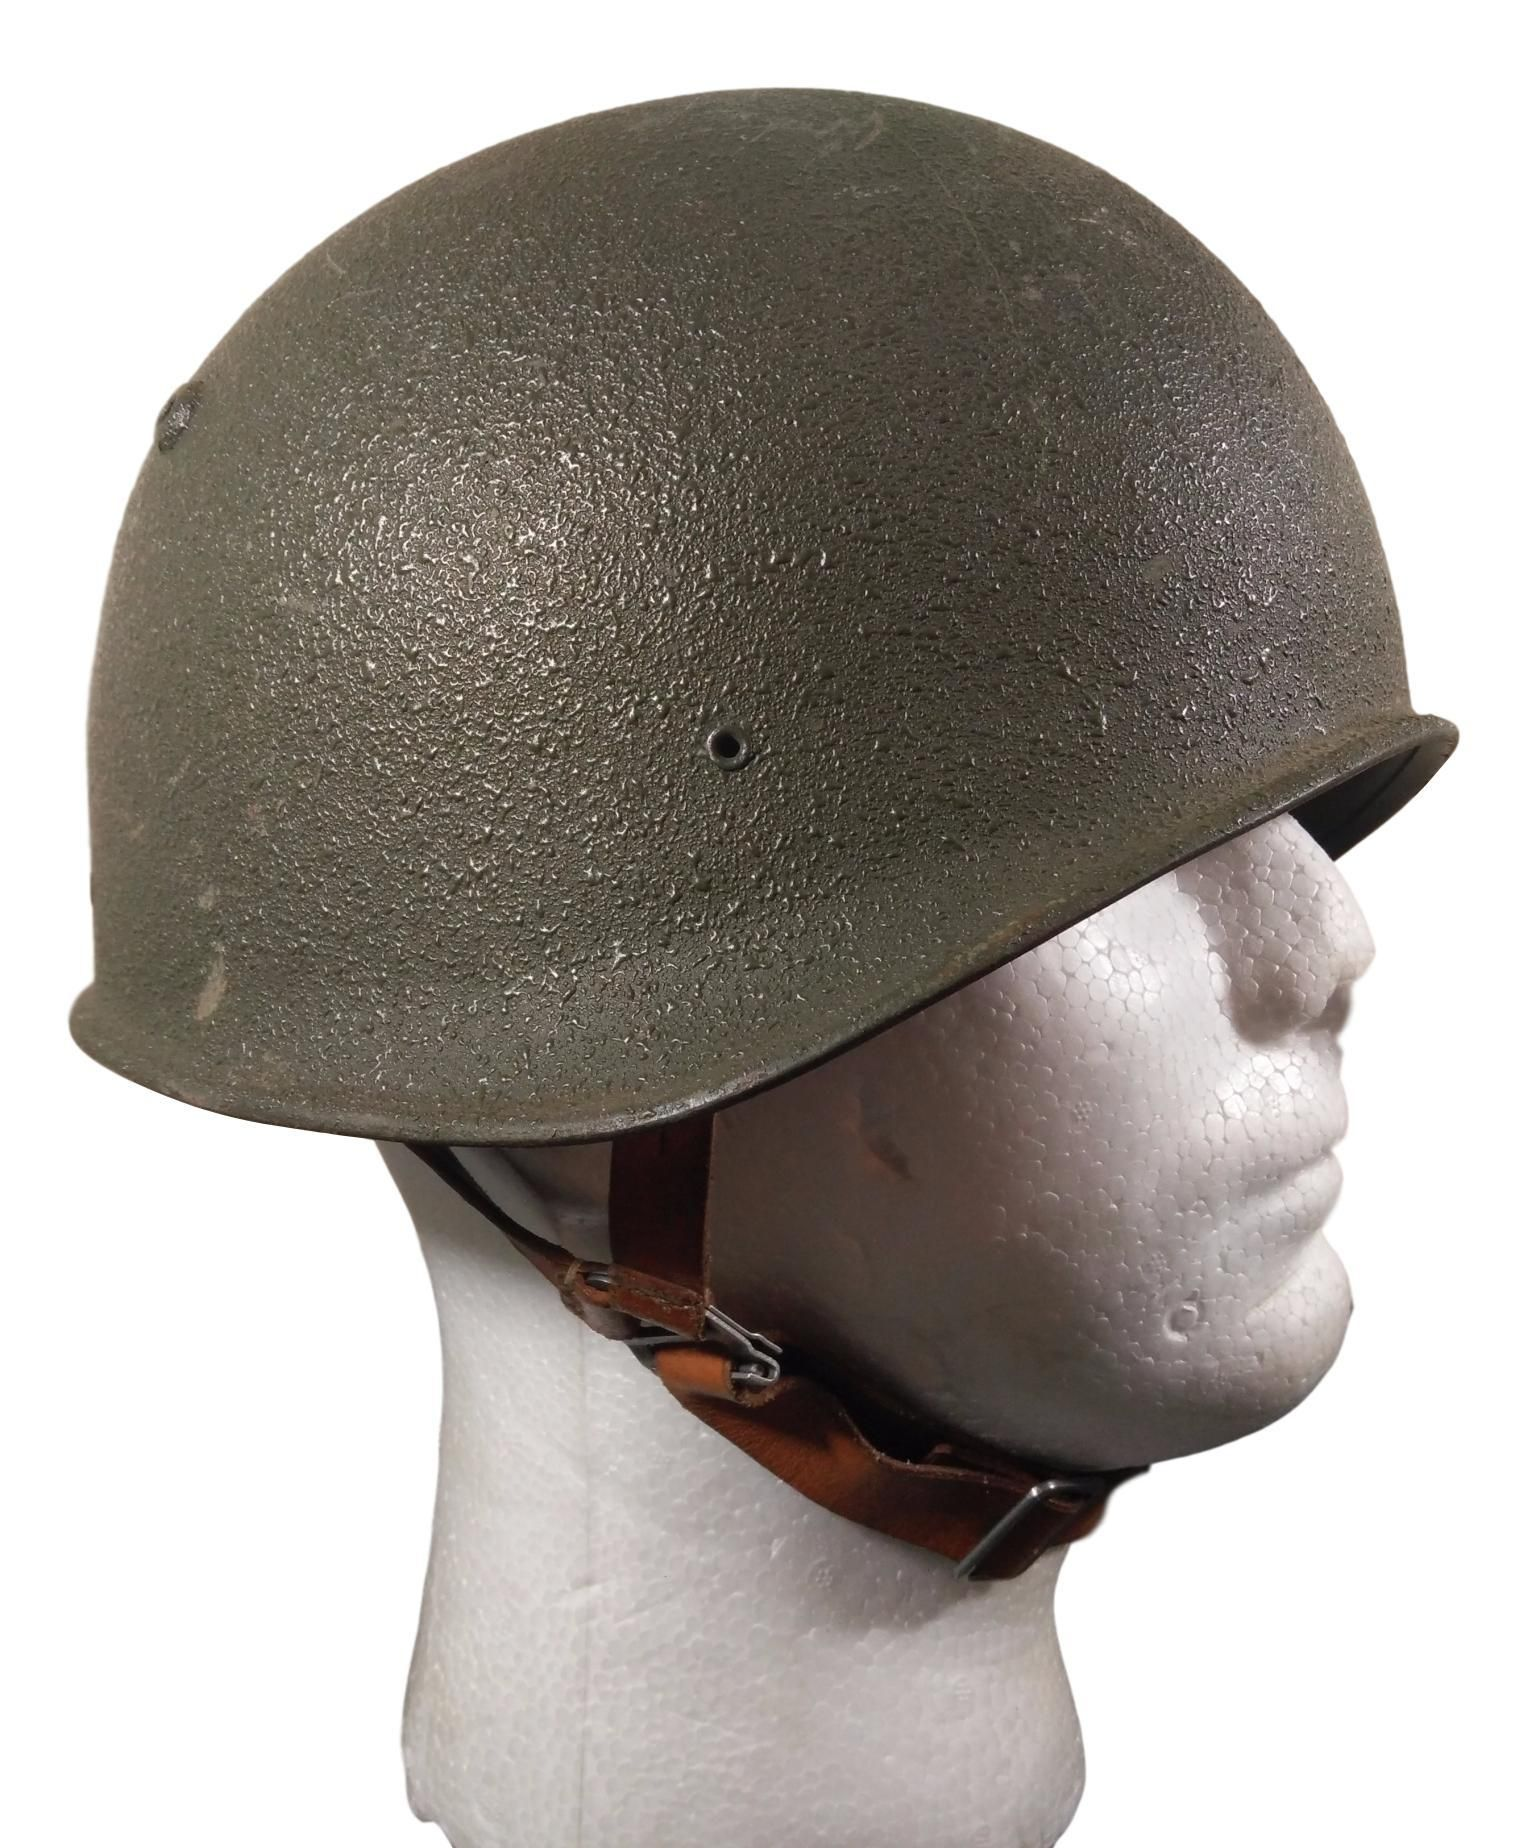 Swiss M1971 Steel Helmet with Alpenflage Camo Cover Used